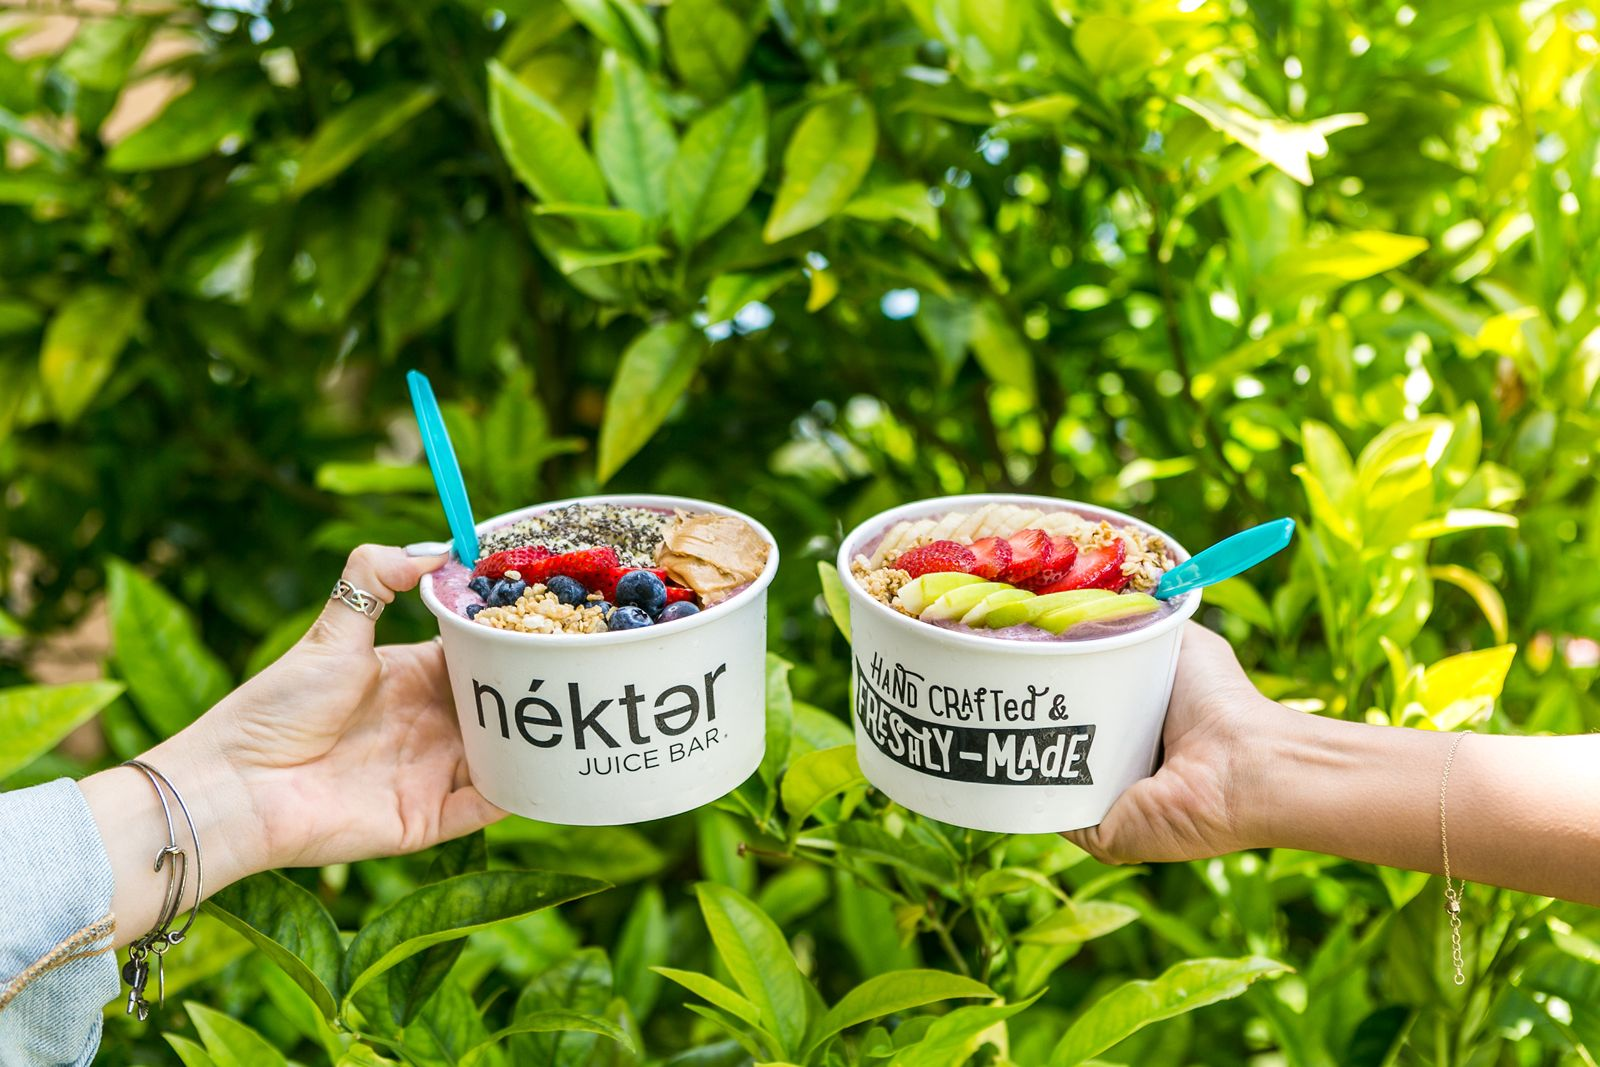 With Three-Year Growth Rate of 396 Percent, Nékter Juice Bar Secures Inc. 5000 Ranking for 4th Consecutive Year